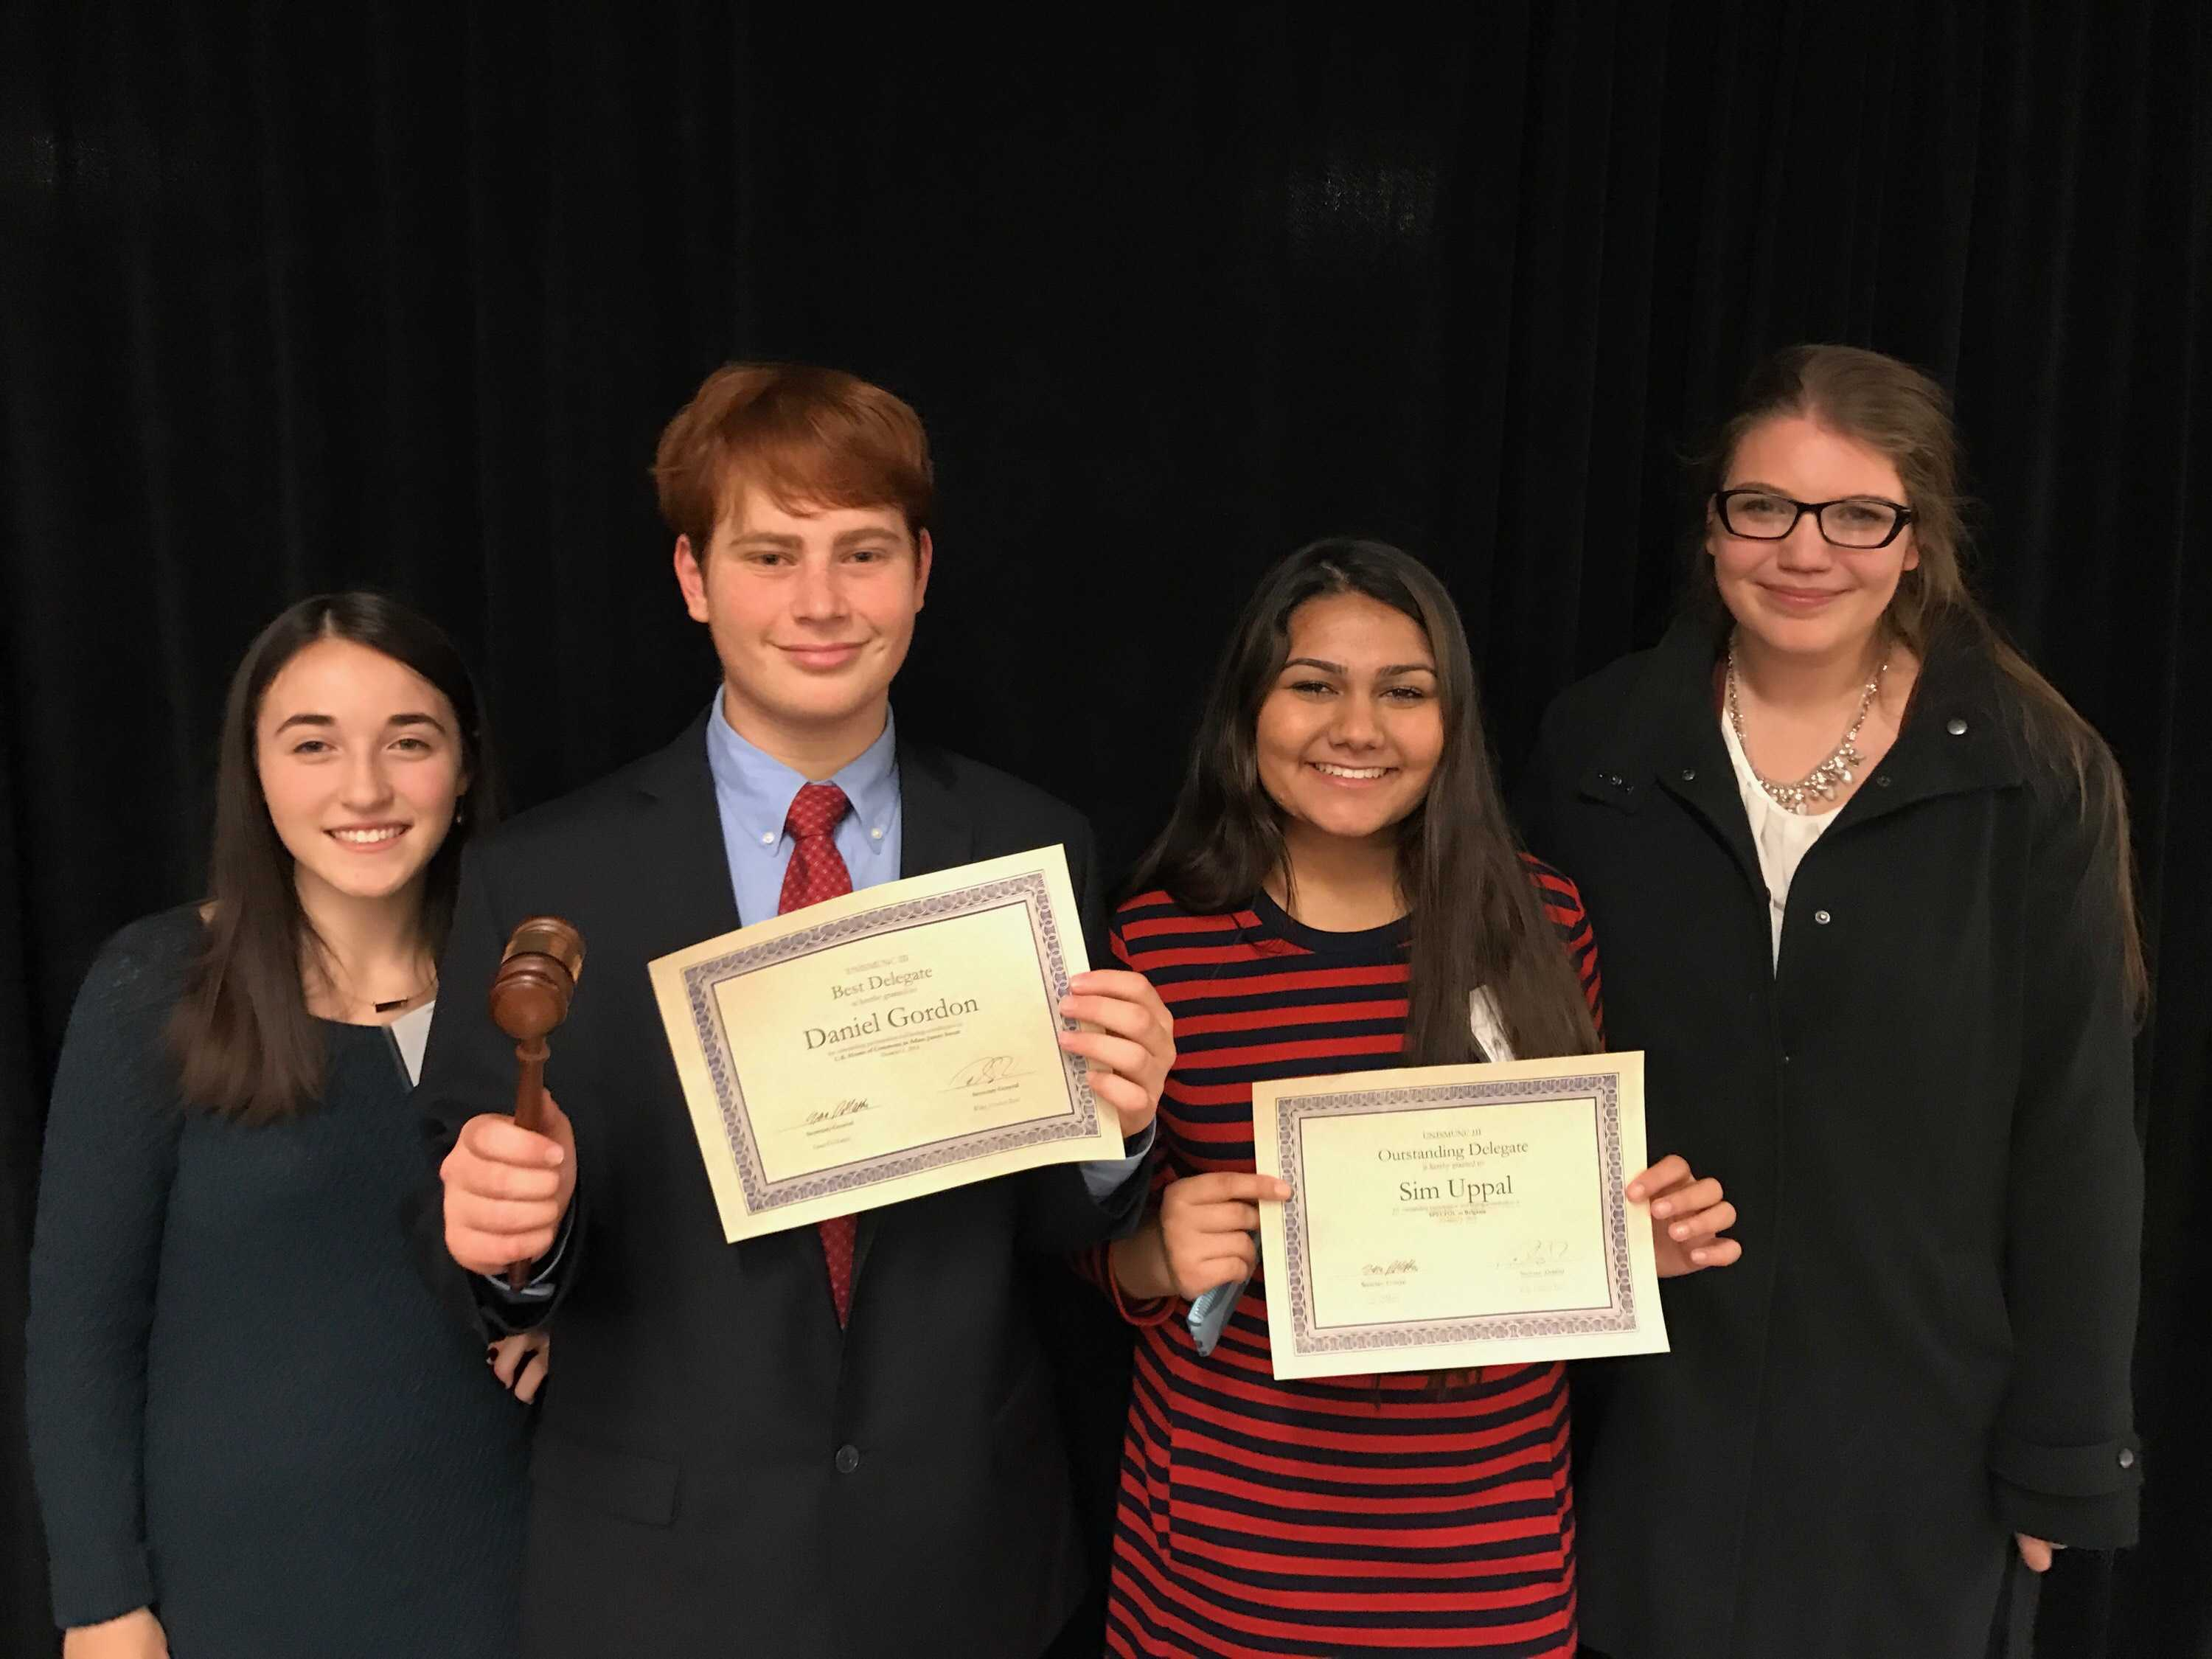 Elyse Sherr (Verbal Commendation), Daniel Gordon (Best Delegate), Simrit Uppal (Outstanding Delegate), and Sophia Decubellis (Verbal Commendation)